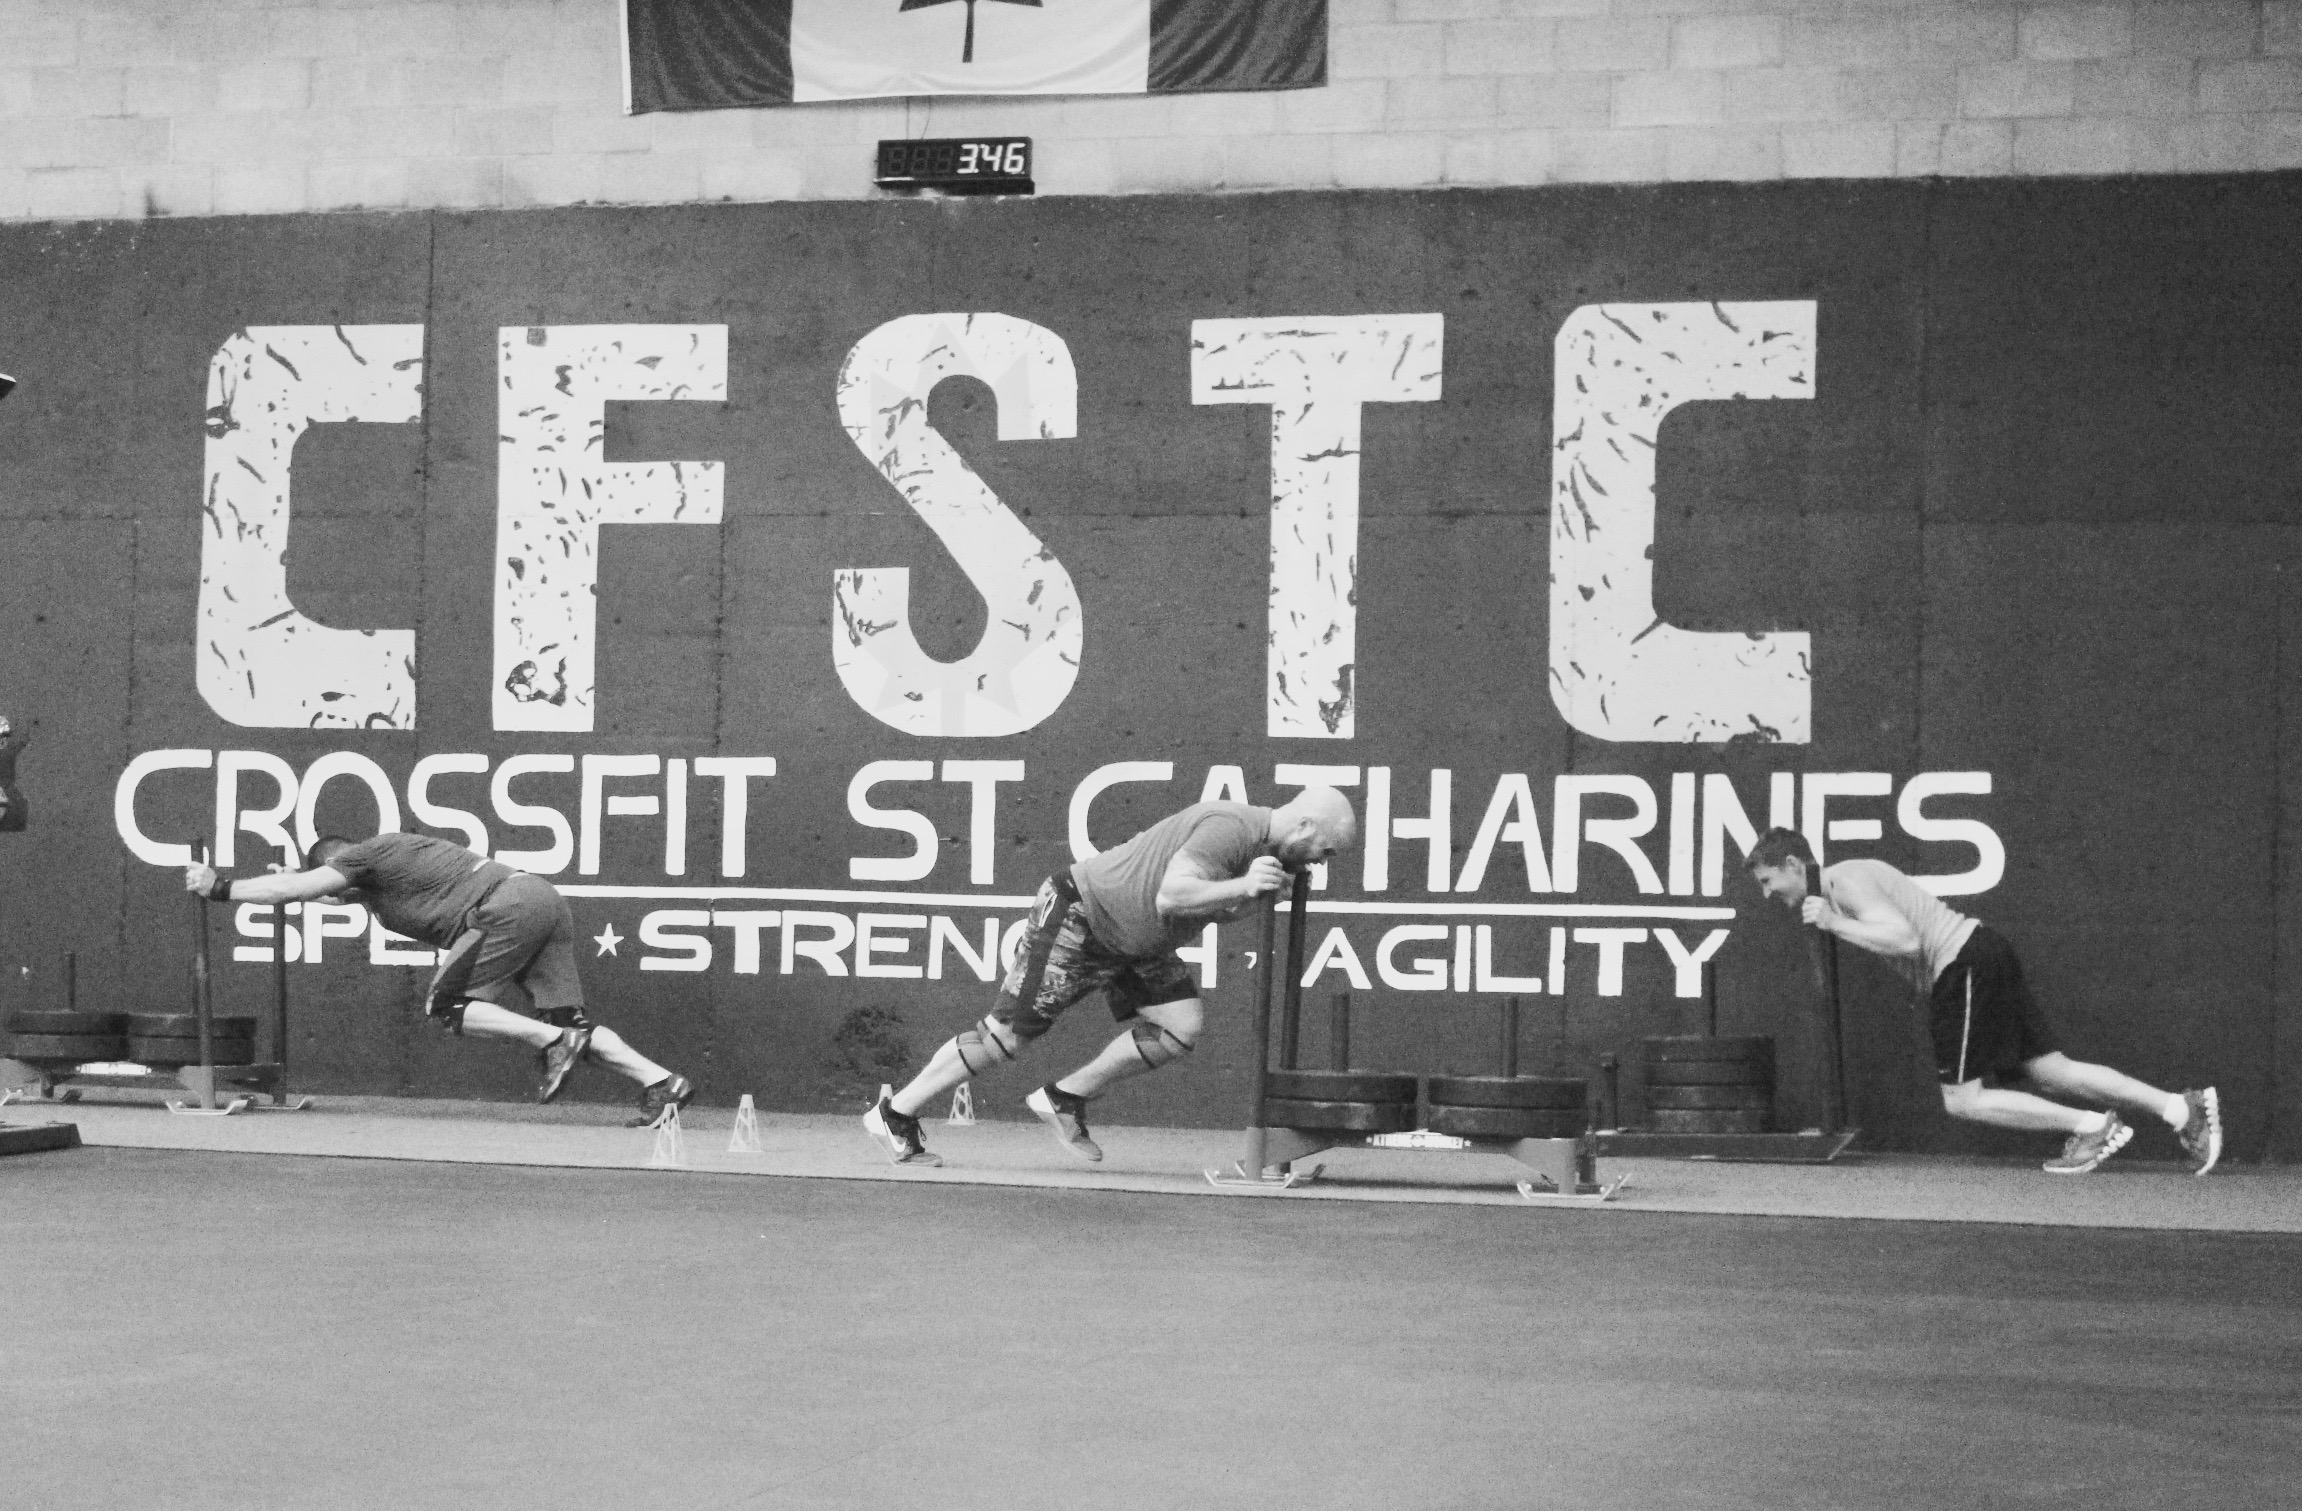 Specialized Training, Crossfit St. Catharines, Niagara